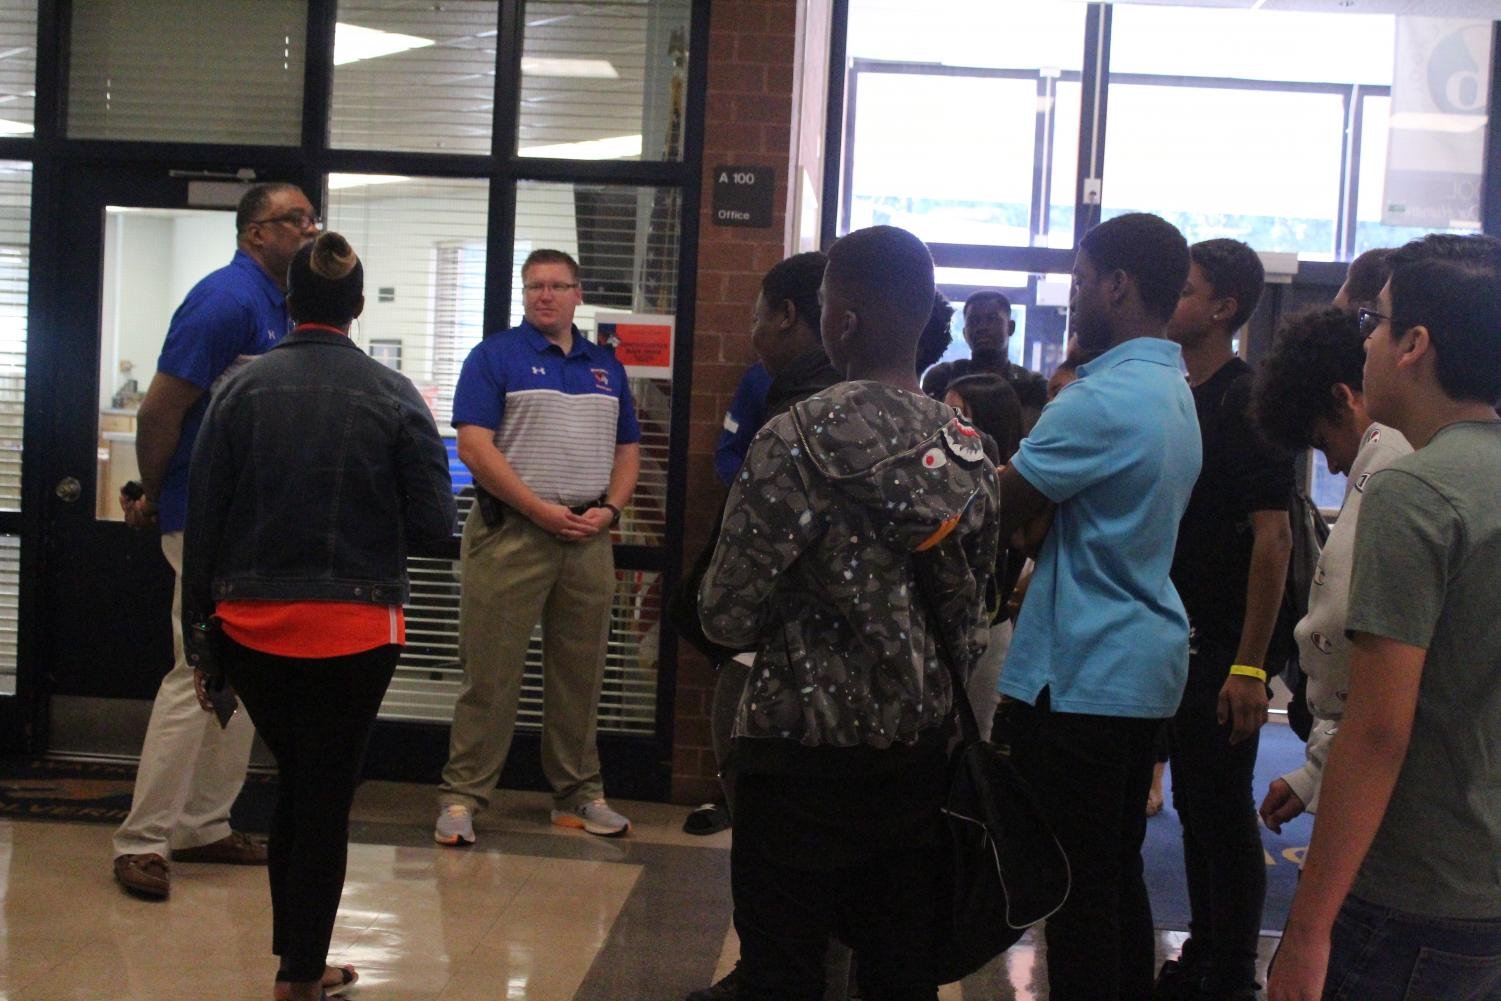 Assistant+principals+Eric+Jackson+and+Ryan+Graves+speak+to+incoming+students.